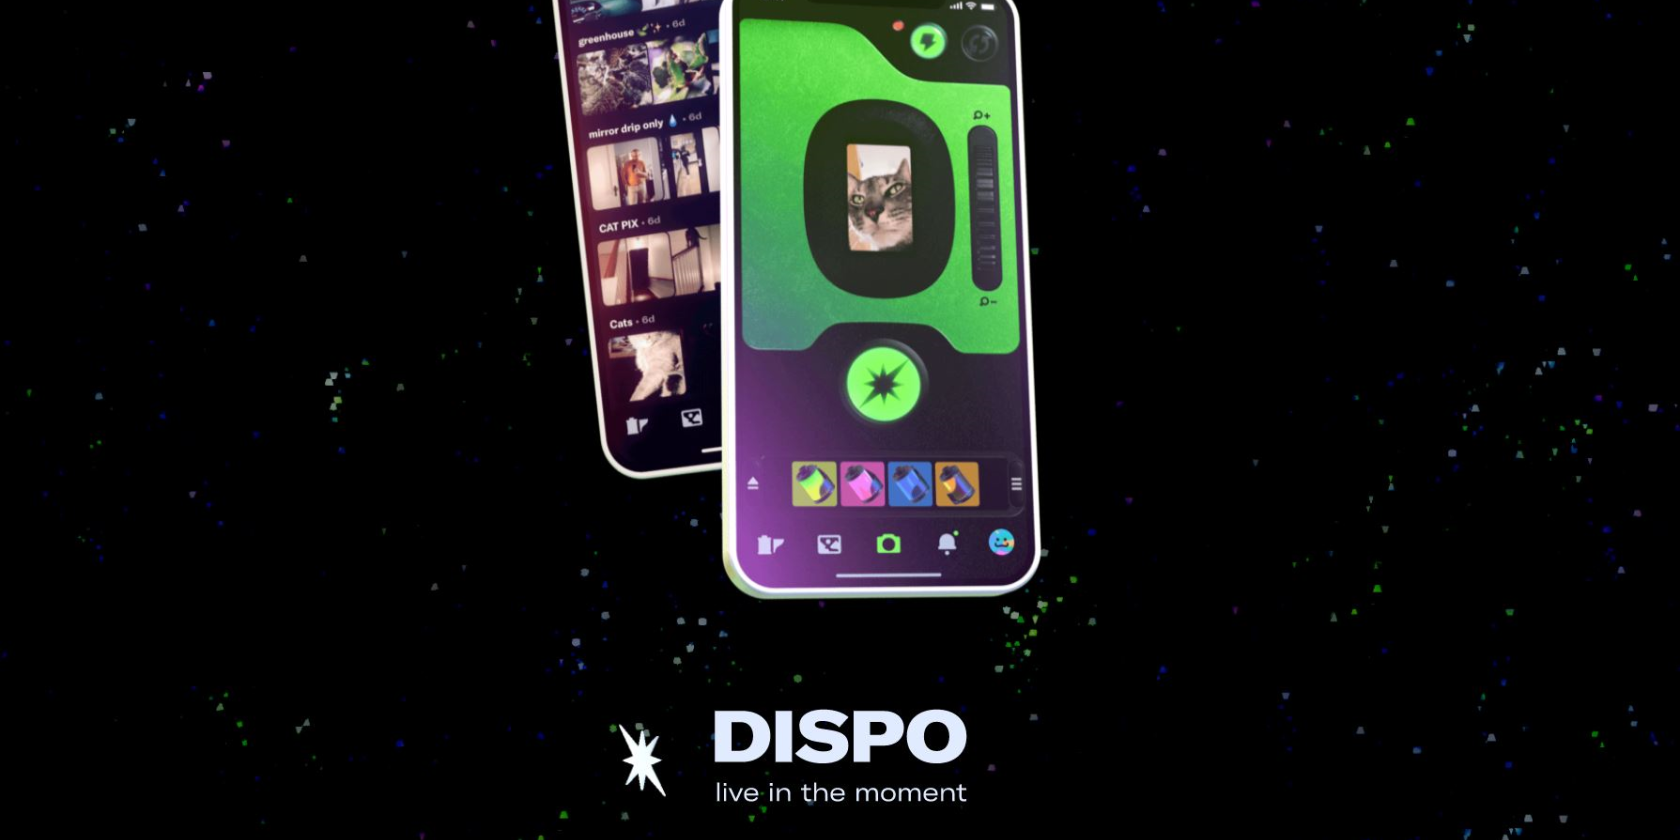 What Is Dispo? The Anti-Instagram That Eschews Filters